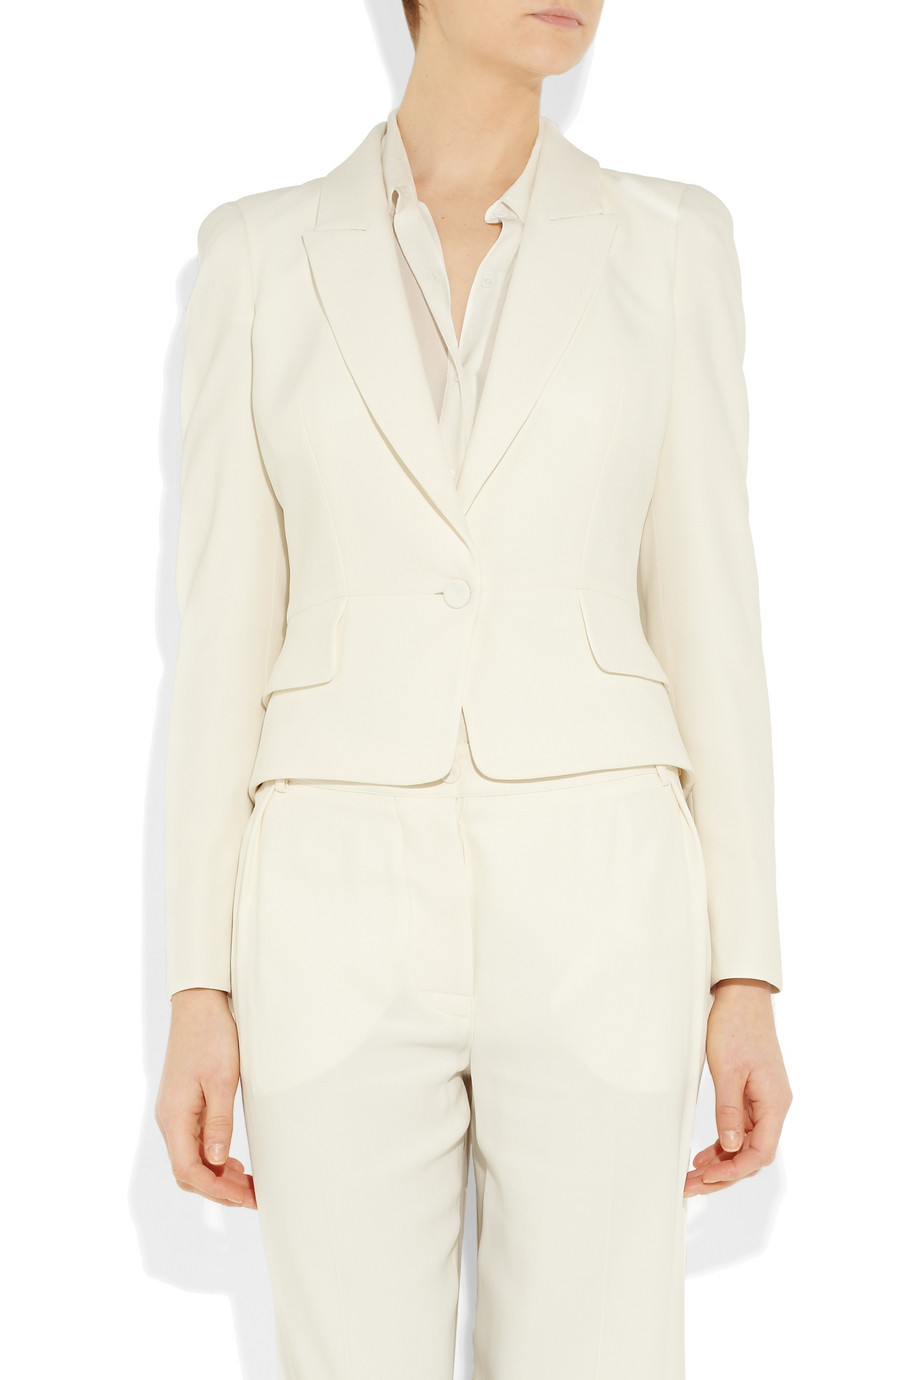 Lyst Alexander Mcqueen Extended Back Crepe Jacket In White